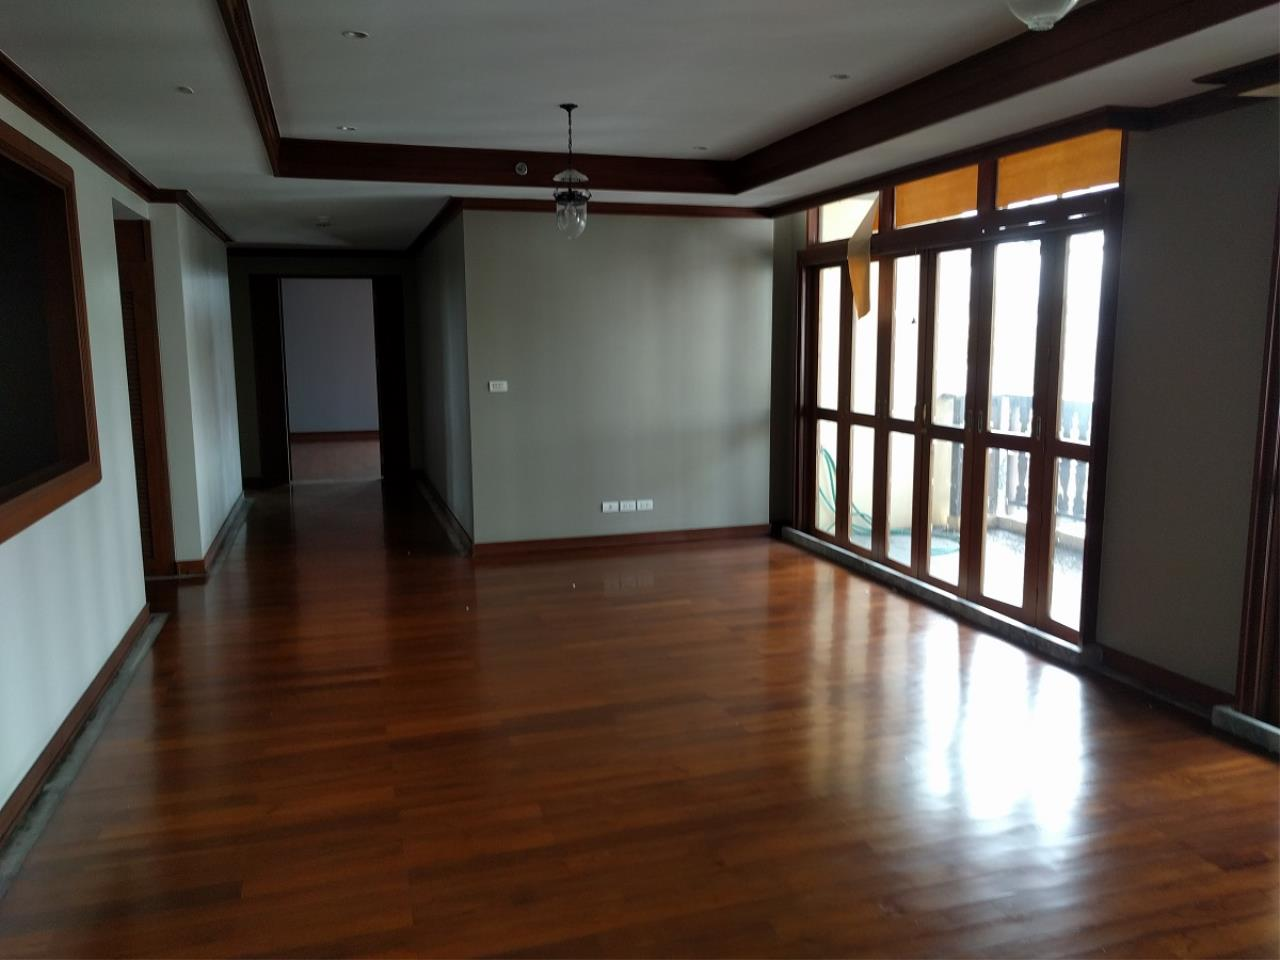 RE/MAX CondoDee Agency's Thai Elegance Luxury Condominium - Entire Building for Sale 8